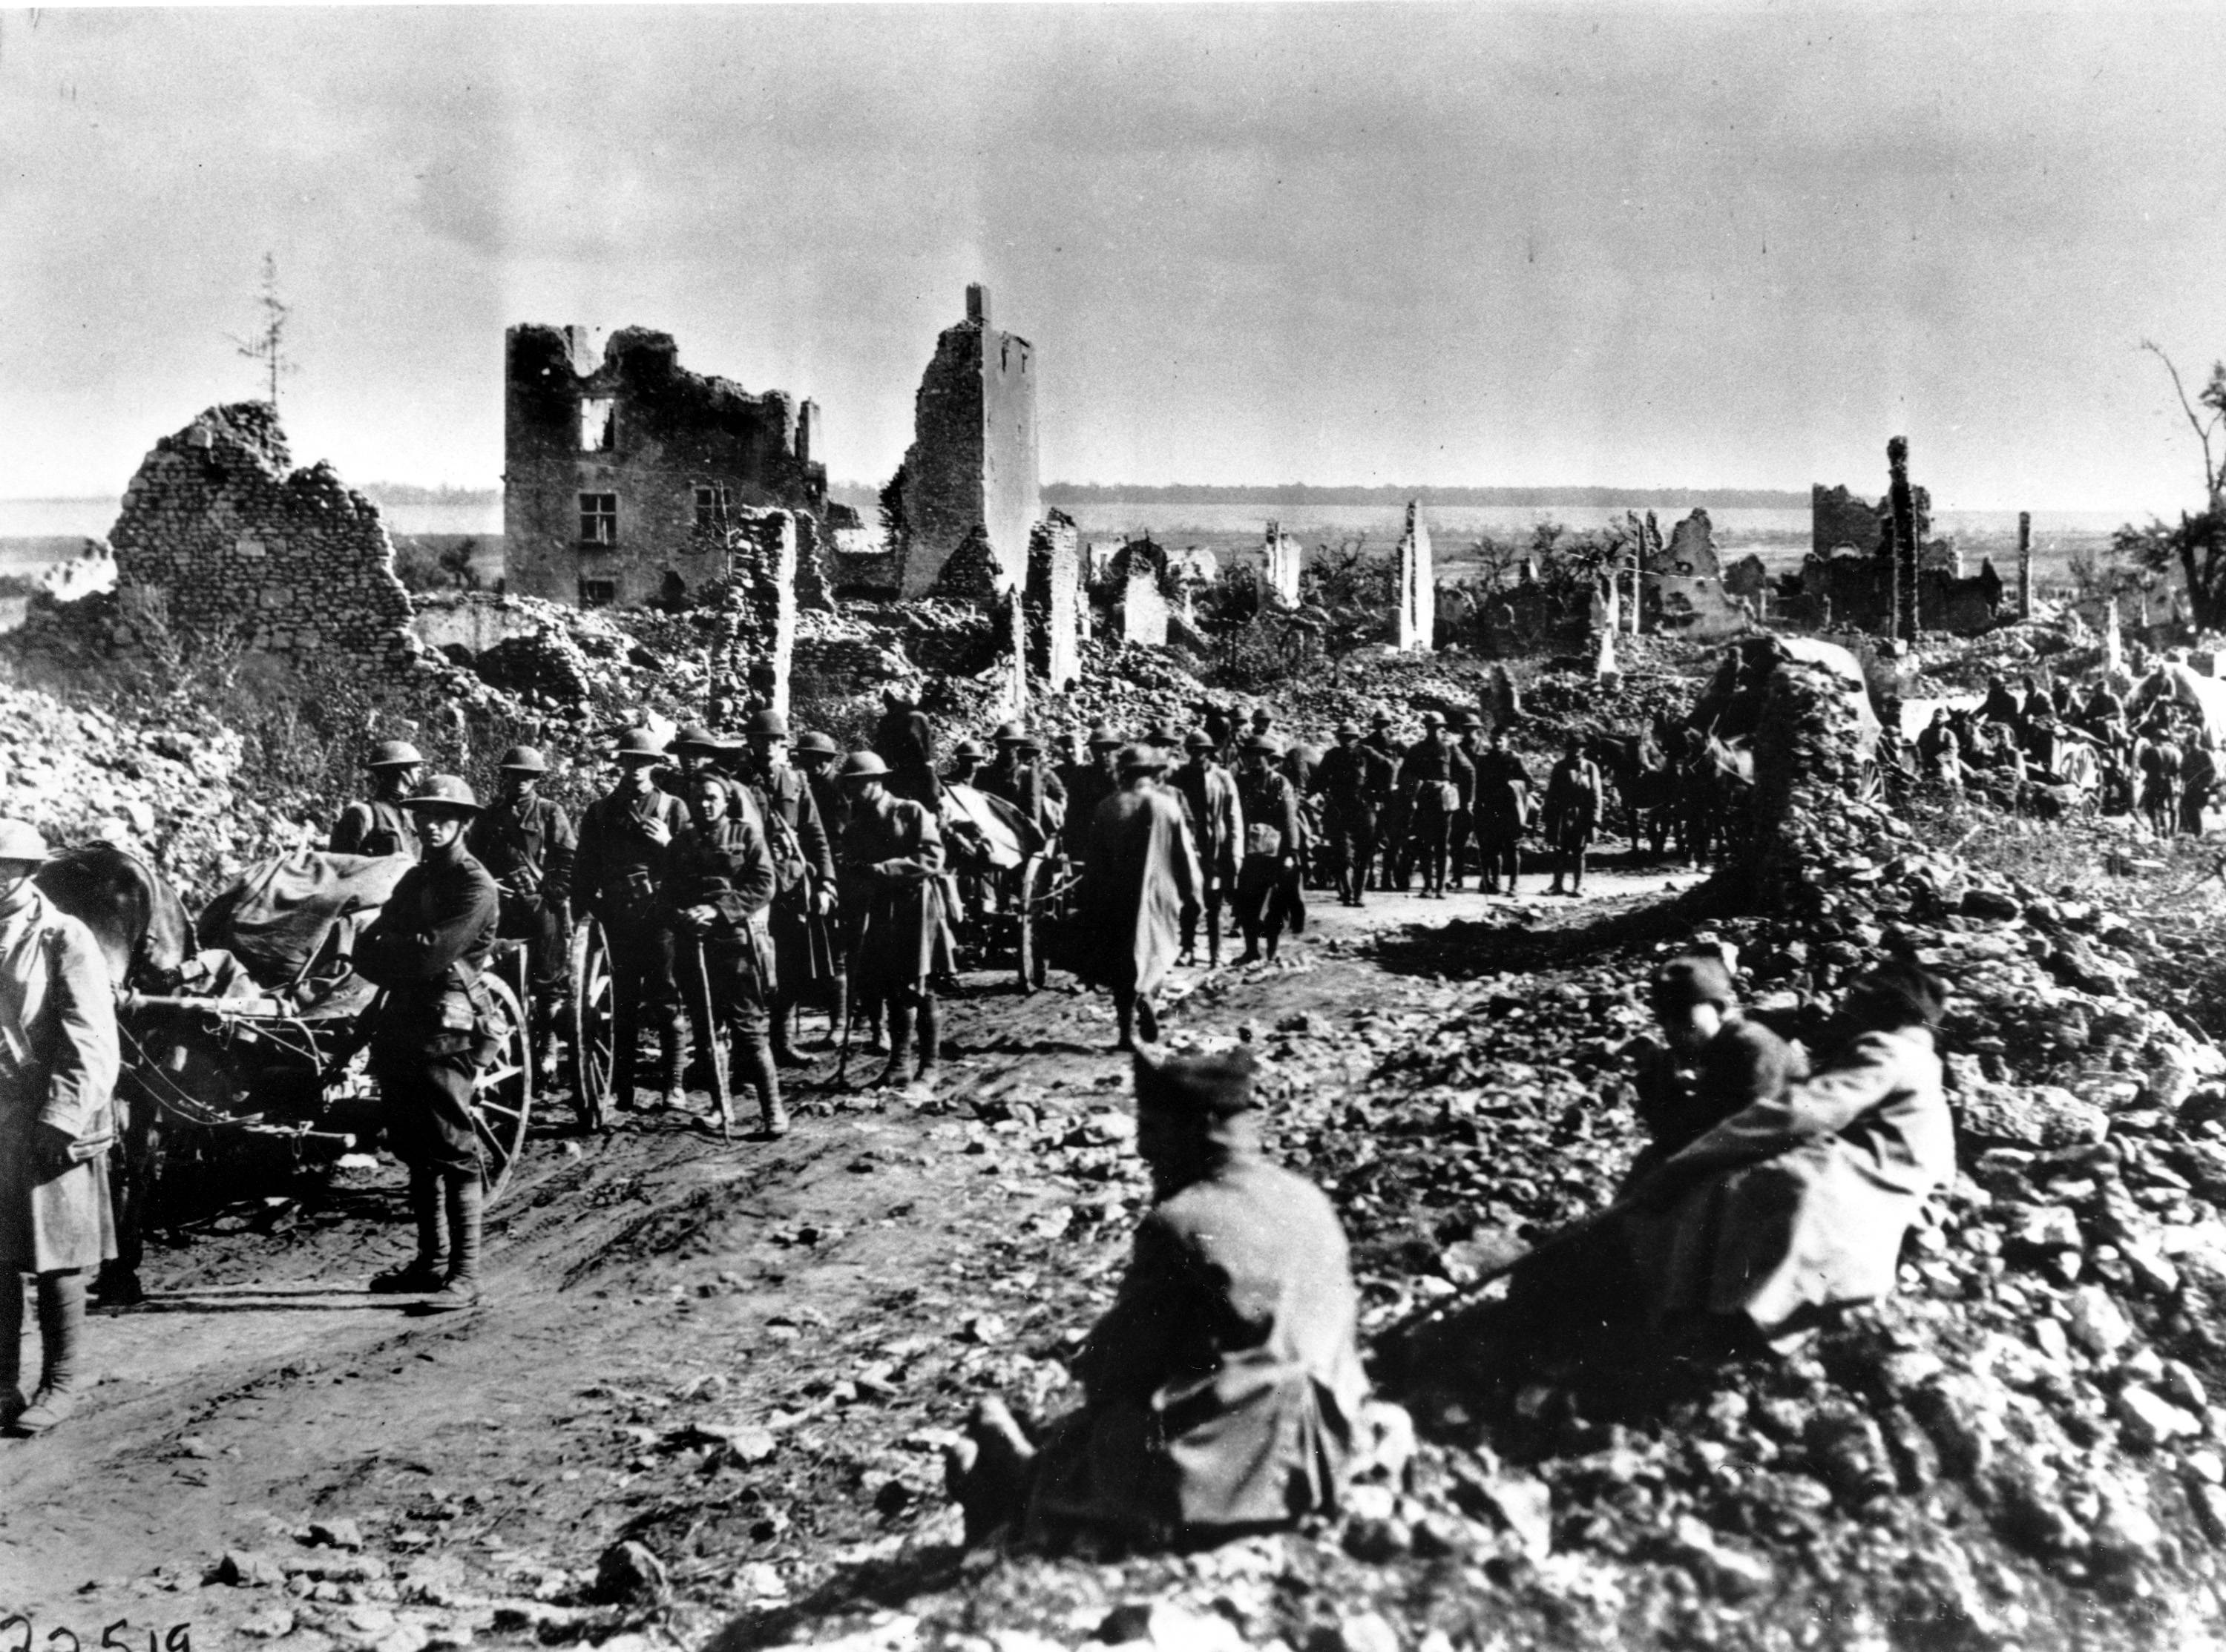 92 OF 100: In this July 1918 file photo, American troops from the 18th Infantry, First Division, pause in a ruined French town near St. Mihiel, France, during World War I.